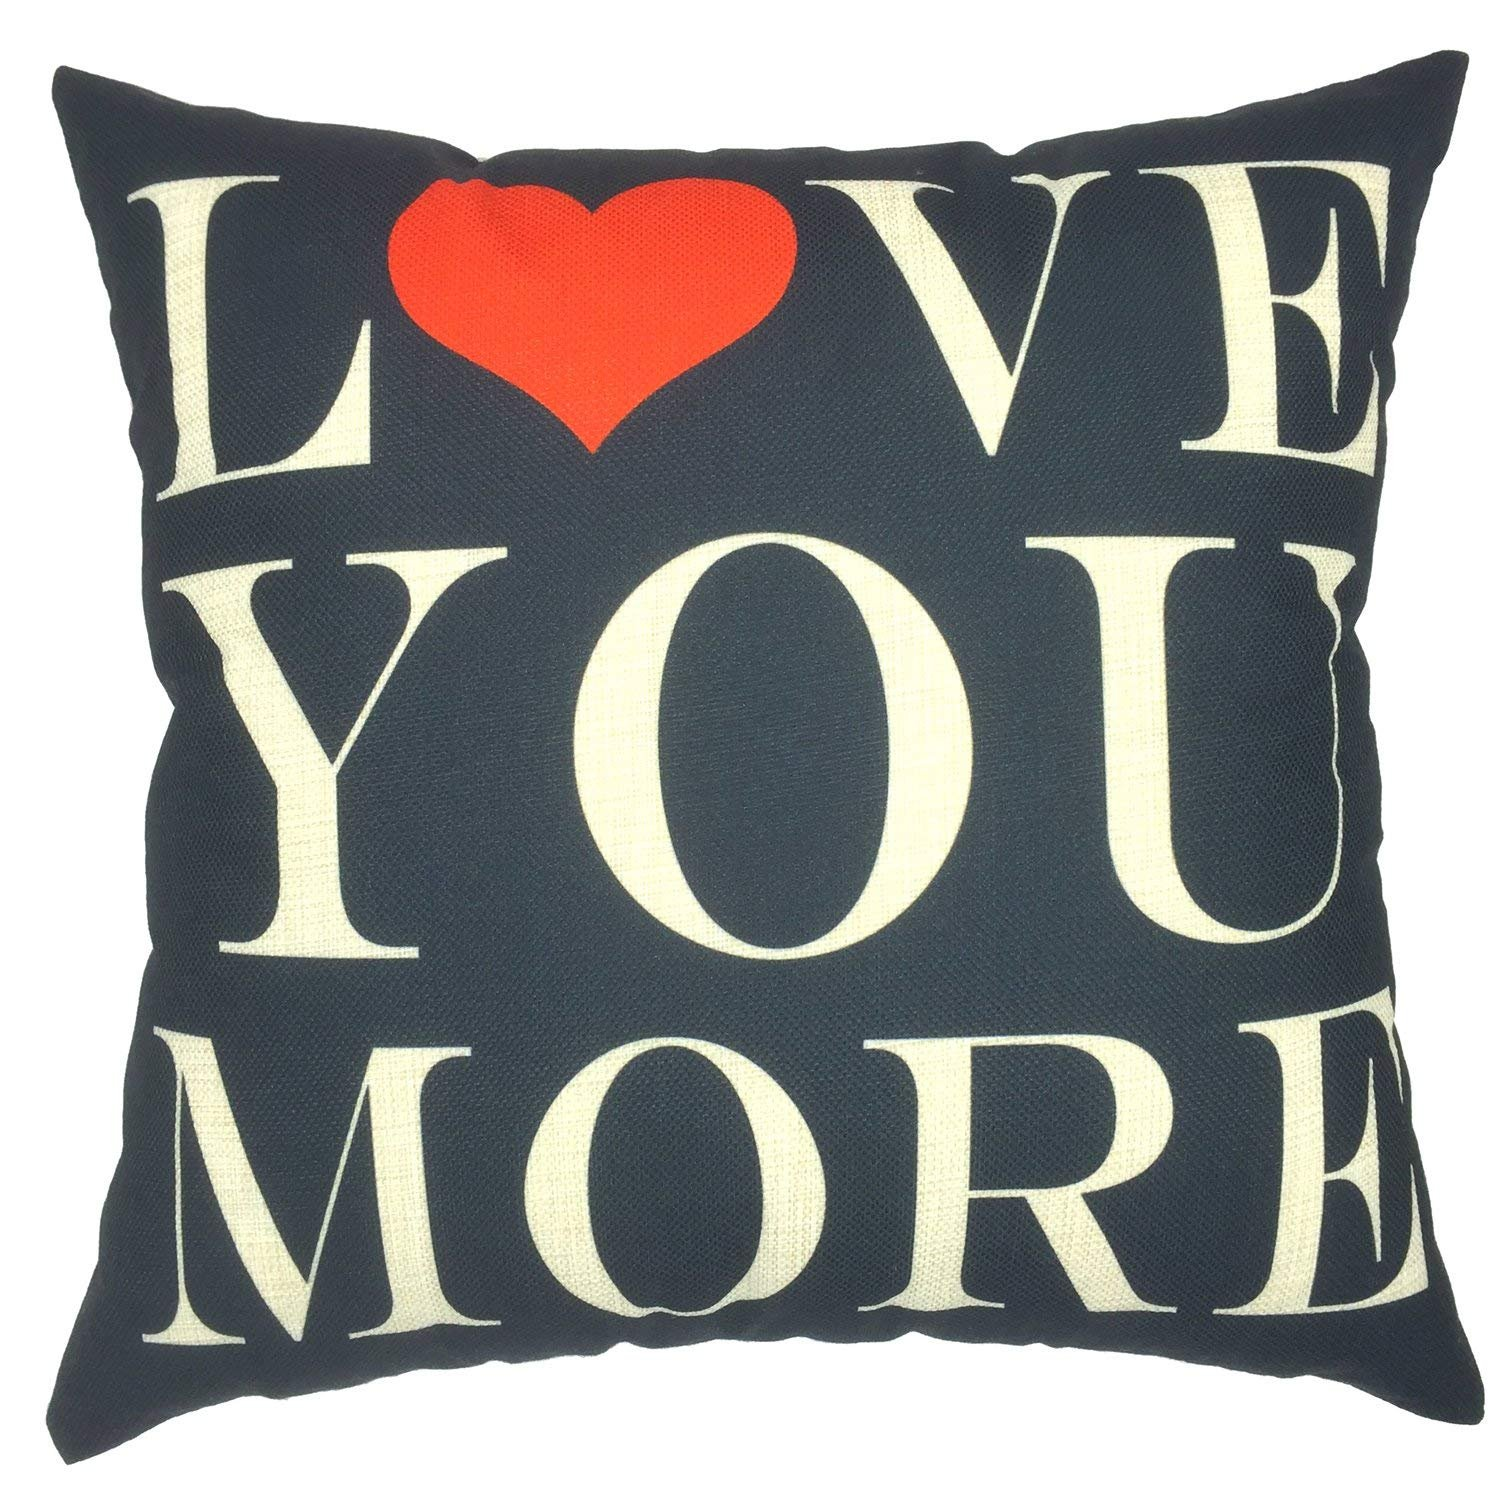 DreamsBig LOVE Cotton Linen Square Decorative Throw Pillow Case Cushion Cover 17.5x17.5,Black by Generic (Image #1)